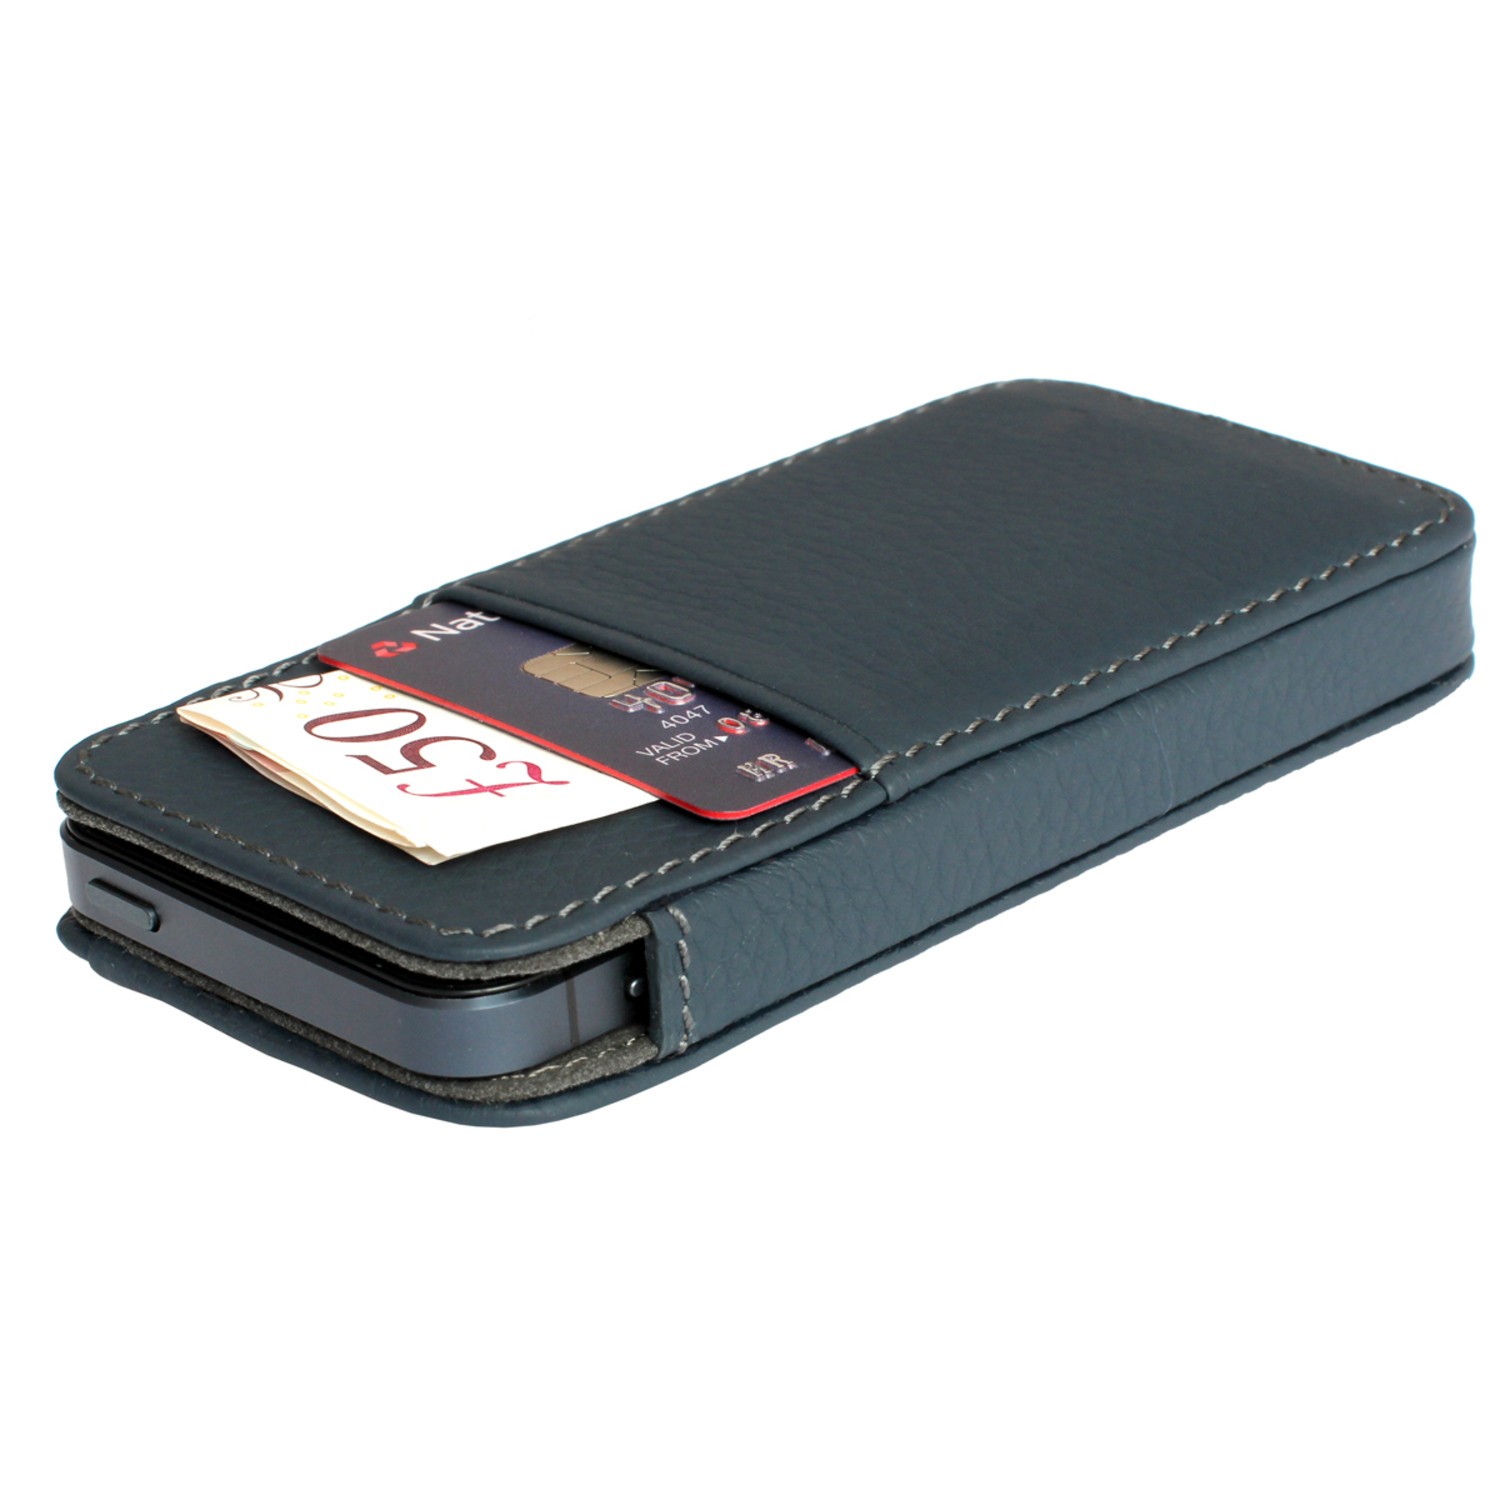 Buy Vaultskin MANHATTAN Slim Bifold Wallet with RFID Protection for Cards and Cash - Top Quality Italian Leather - Ultra Thin Front pocket Holder Designed For Up To 8 Cards and Cash (Black): Shop top fashion brands Wallets at dasreviews.ml FREE .